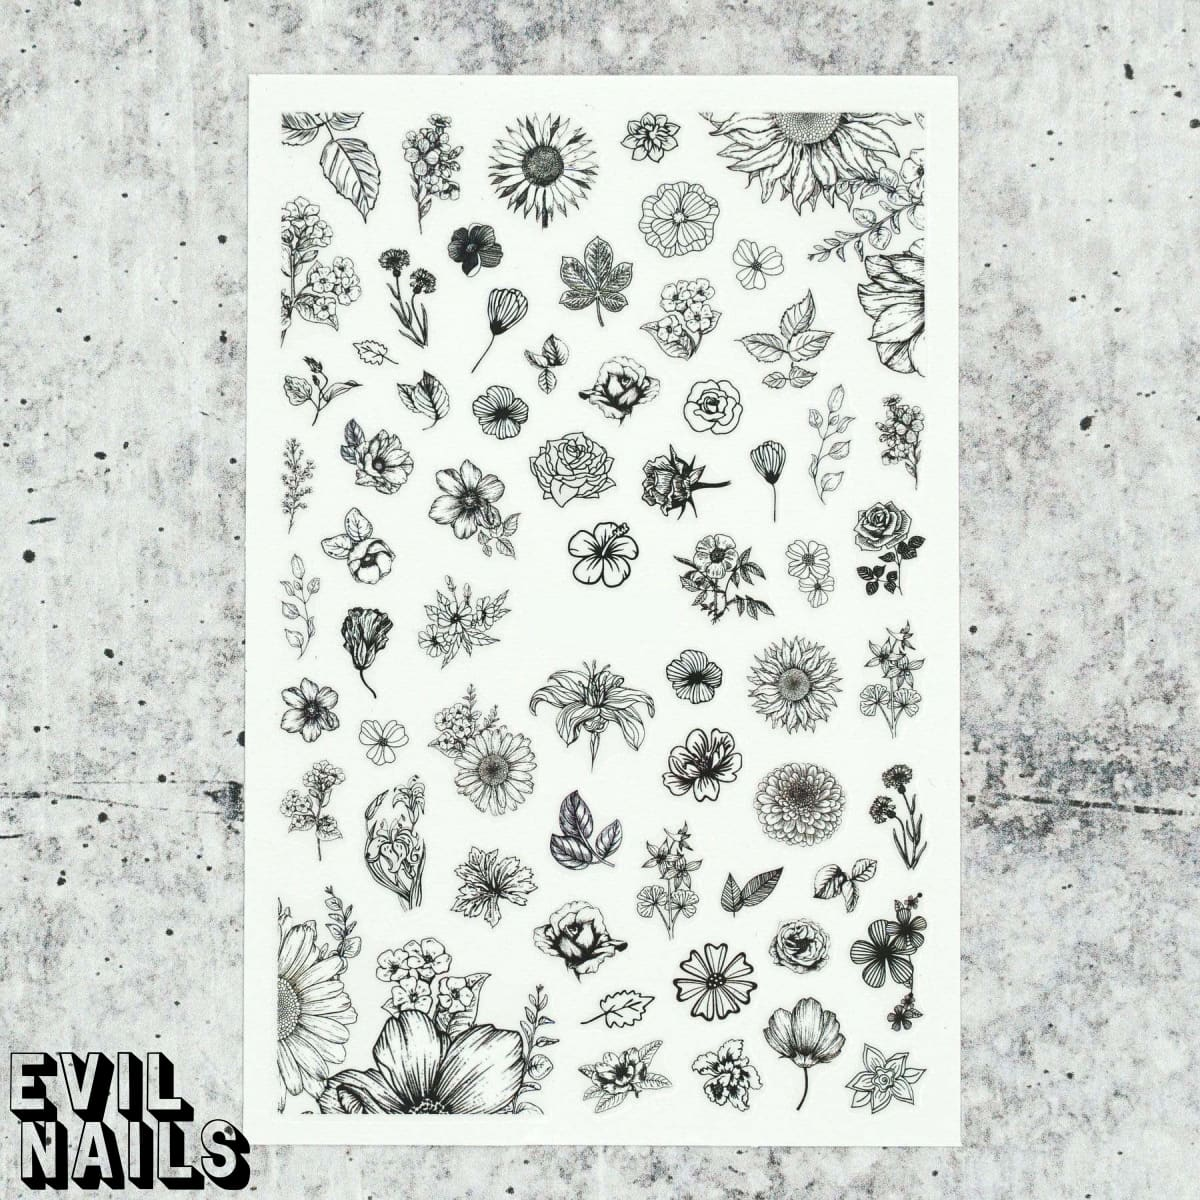 Evil Nails Decals Vintage Floral